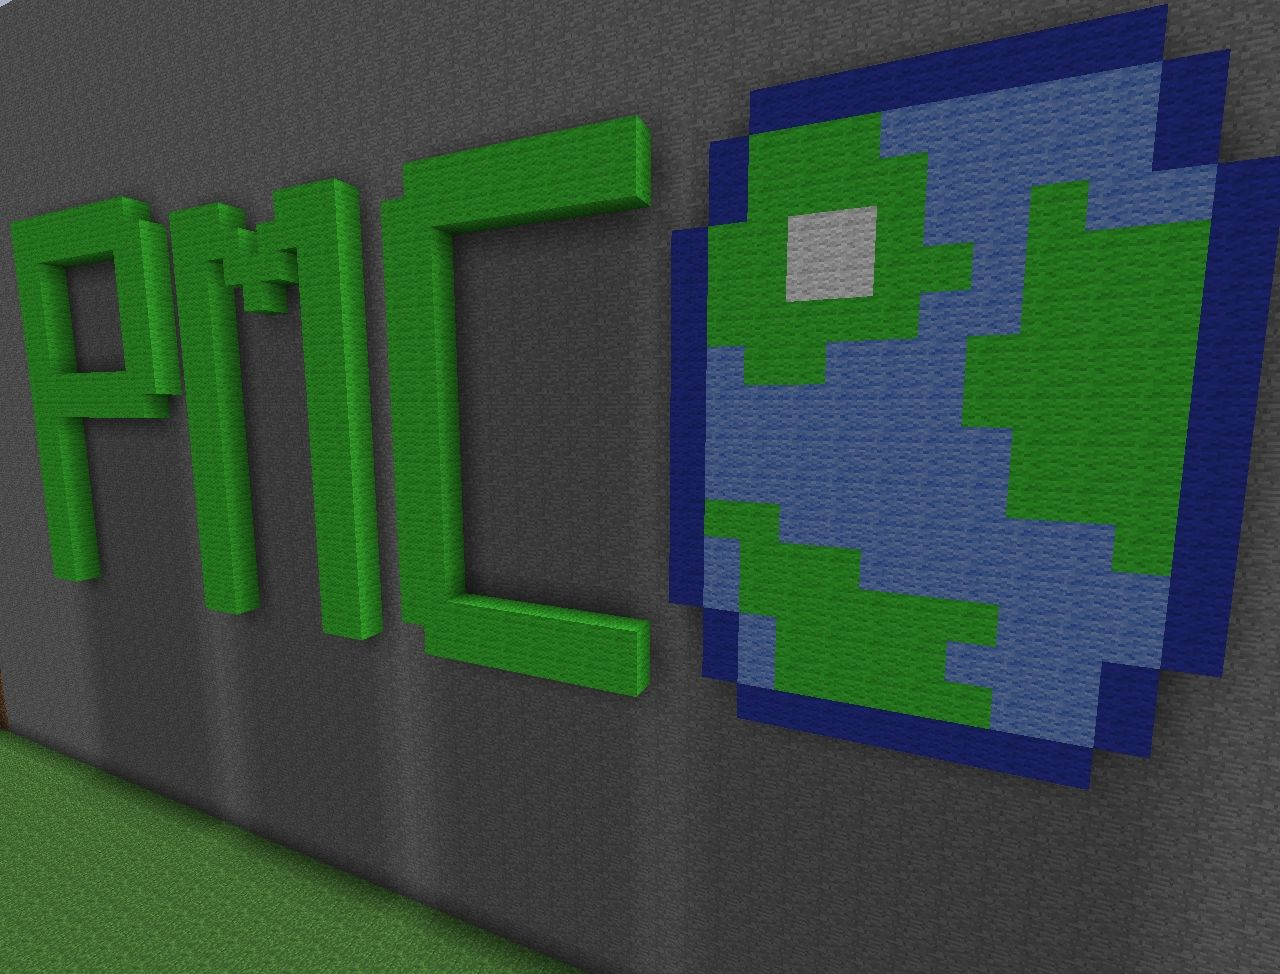 Wall Decorations Minecraft : Pmc logo wall art minecraft project